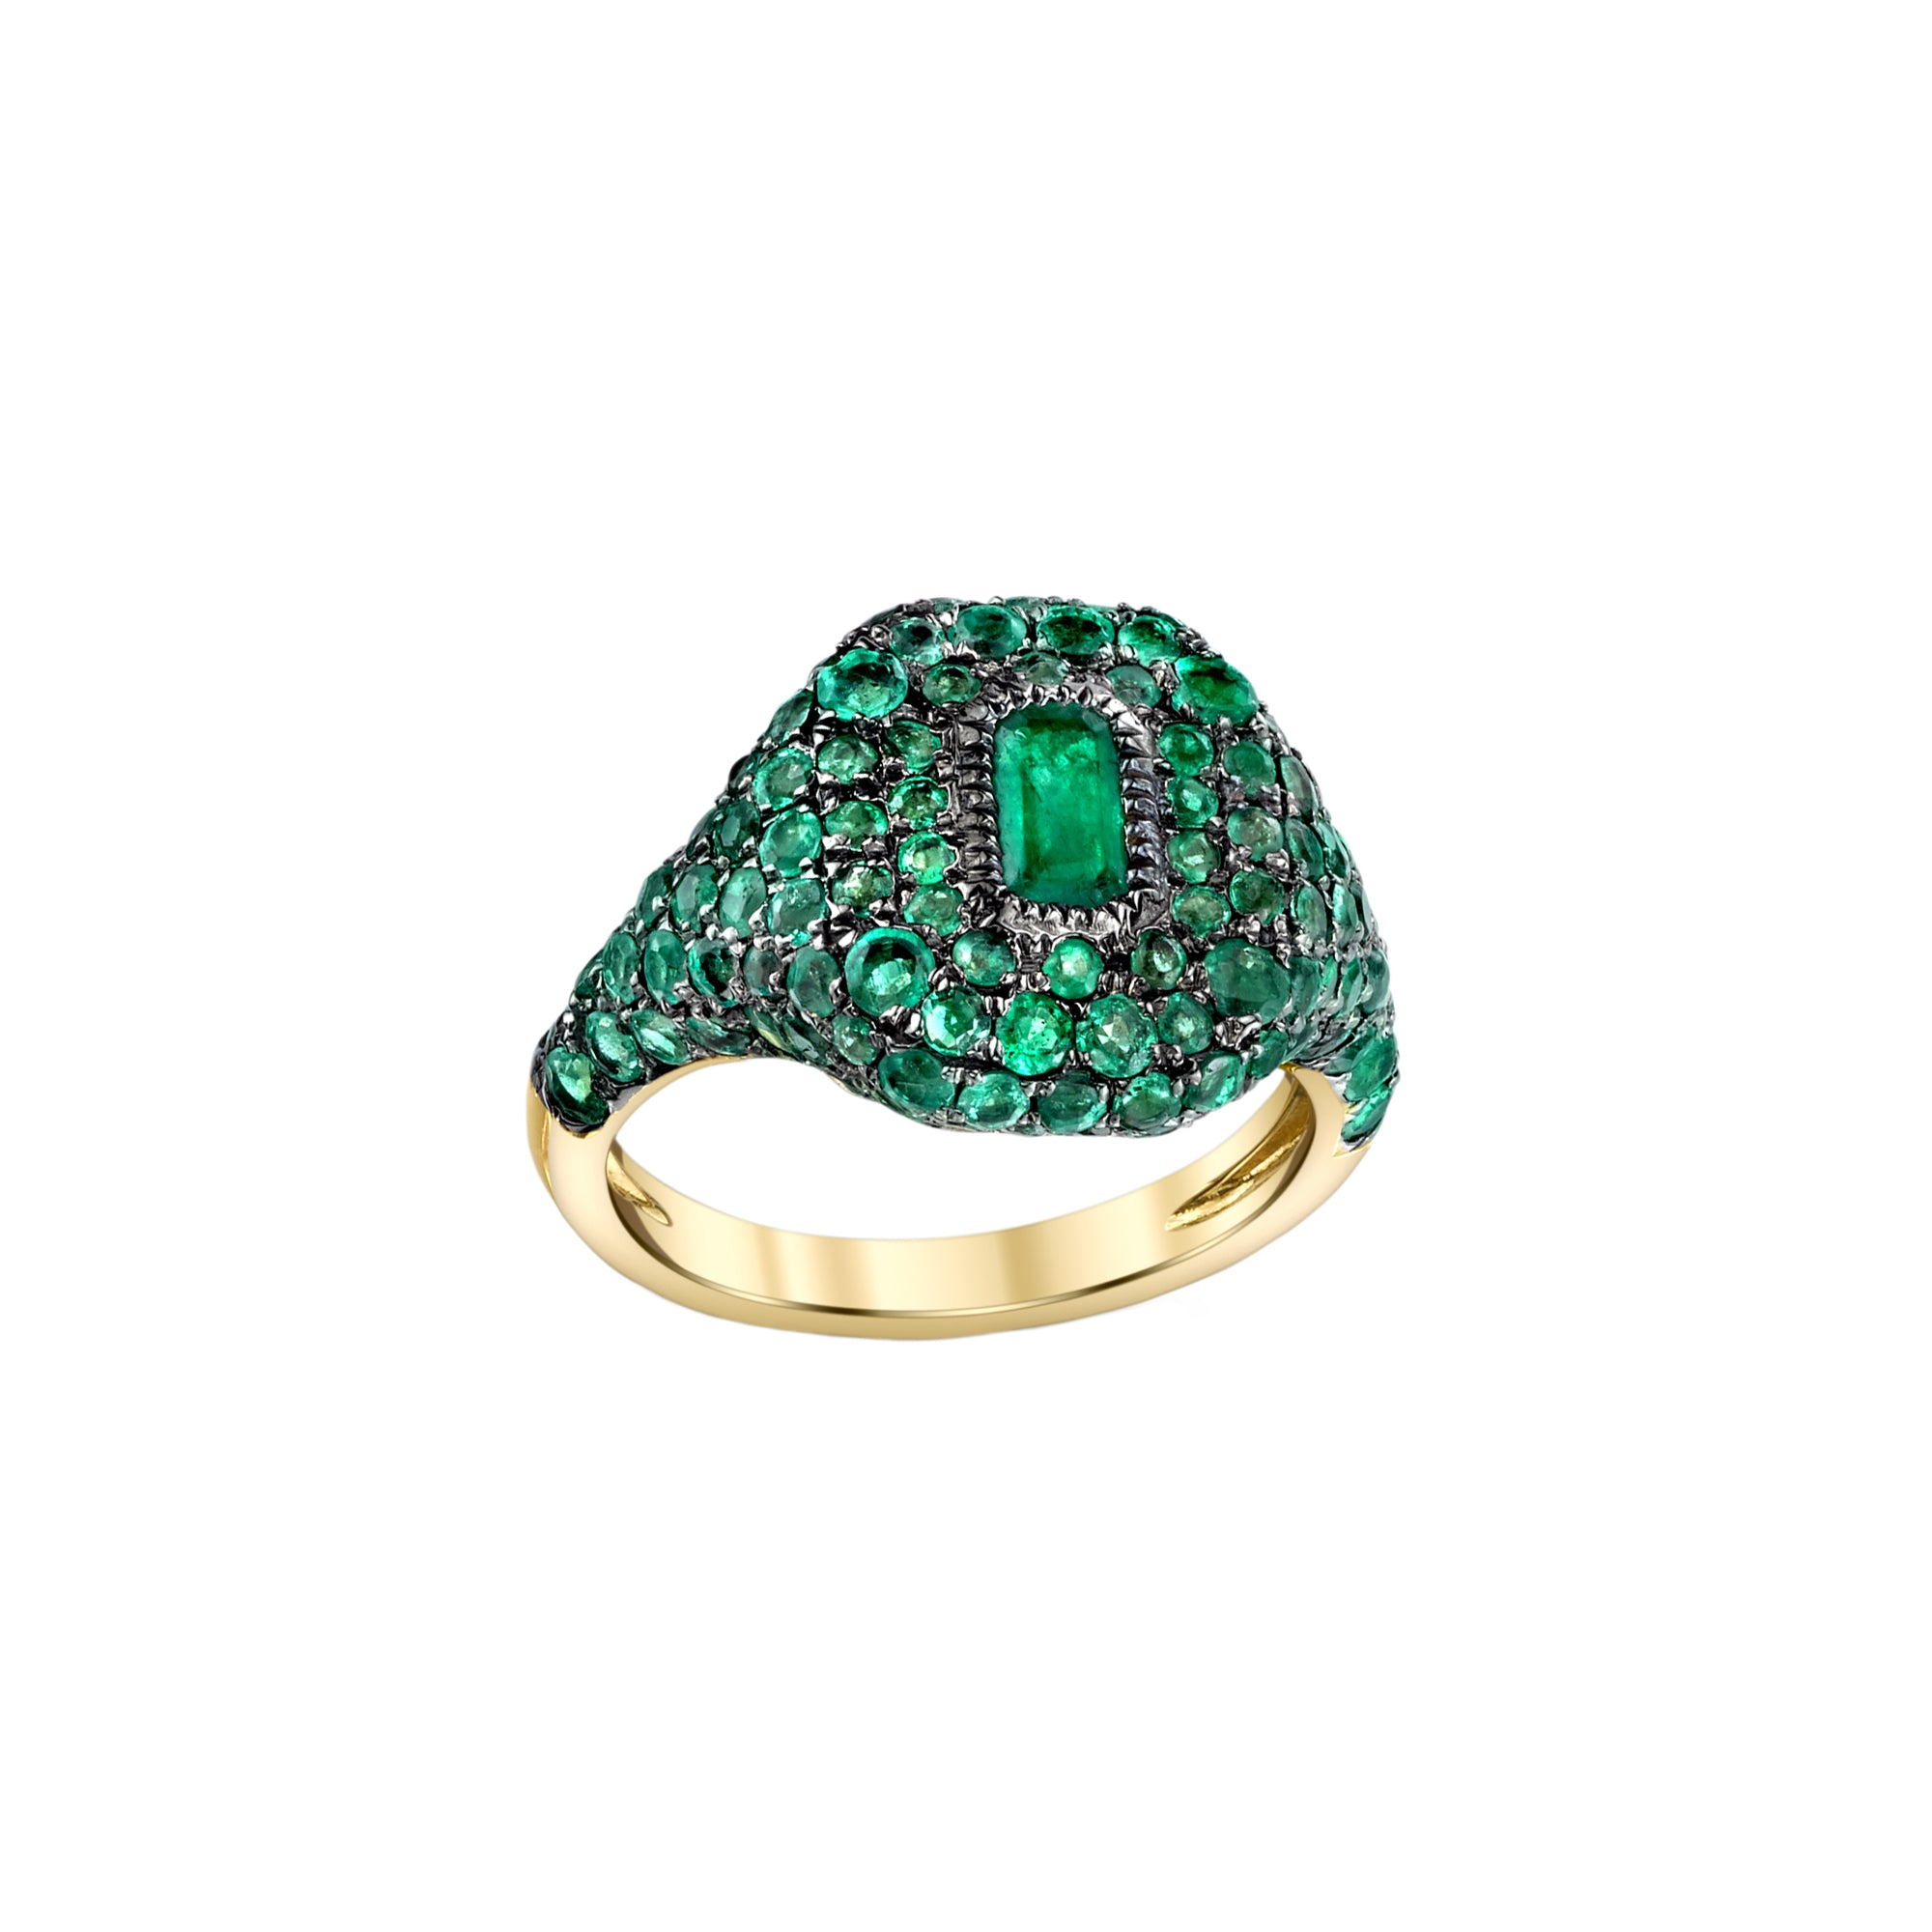 Shay Pave Baguette Emerald Pinky Ring - Gold - Rings - Broken English Jewelry